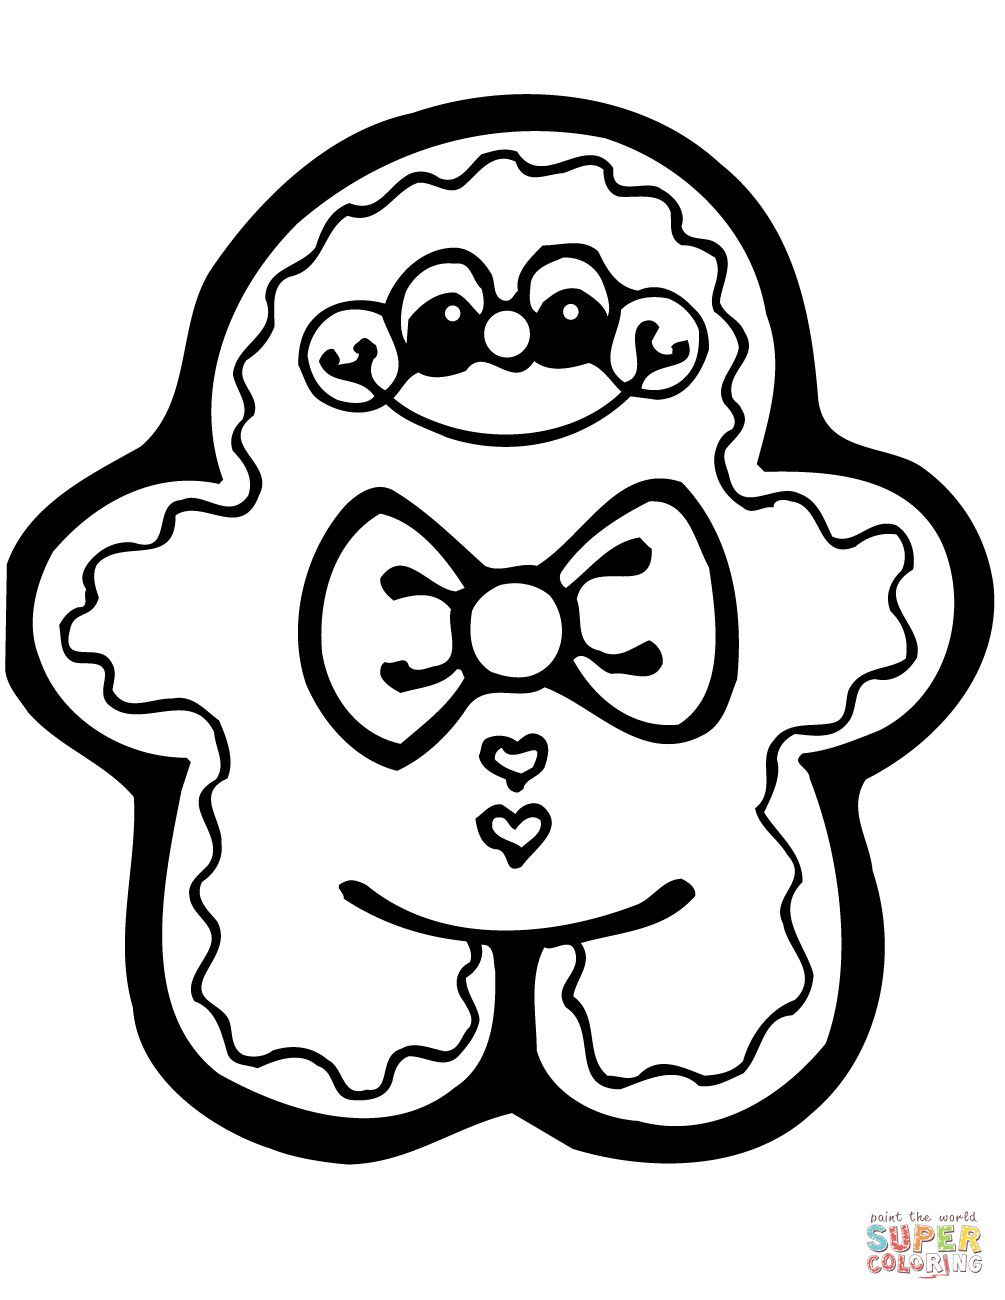 how to draw gingerbread man gingerbread man drawing at getdrawings free download man to draw gingerbread how